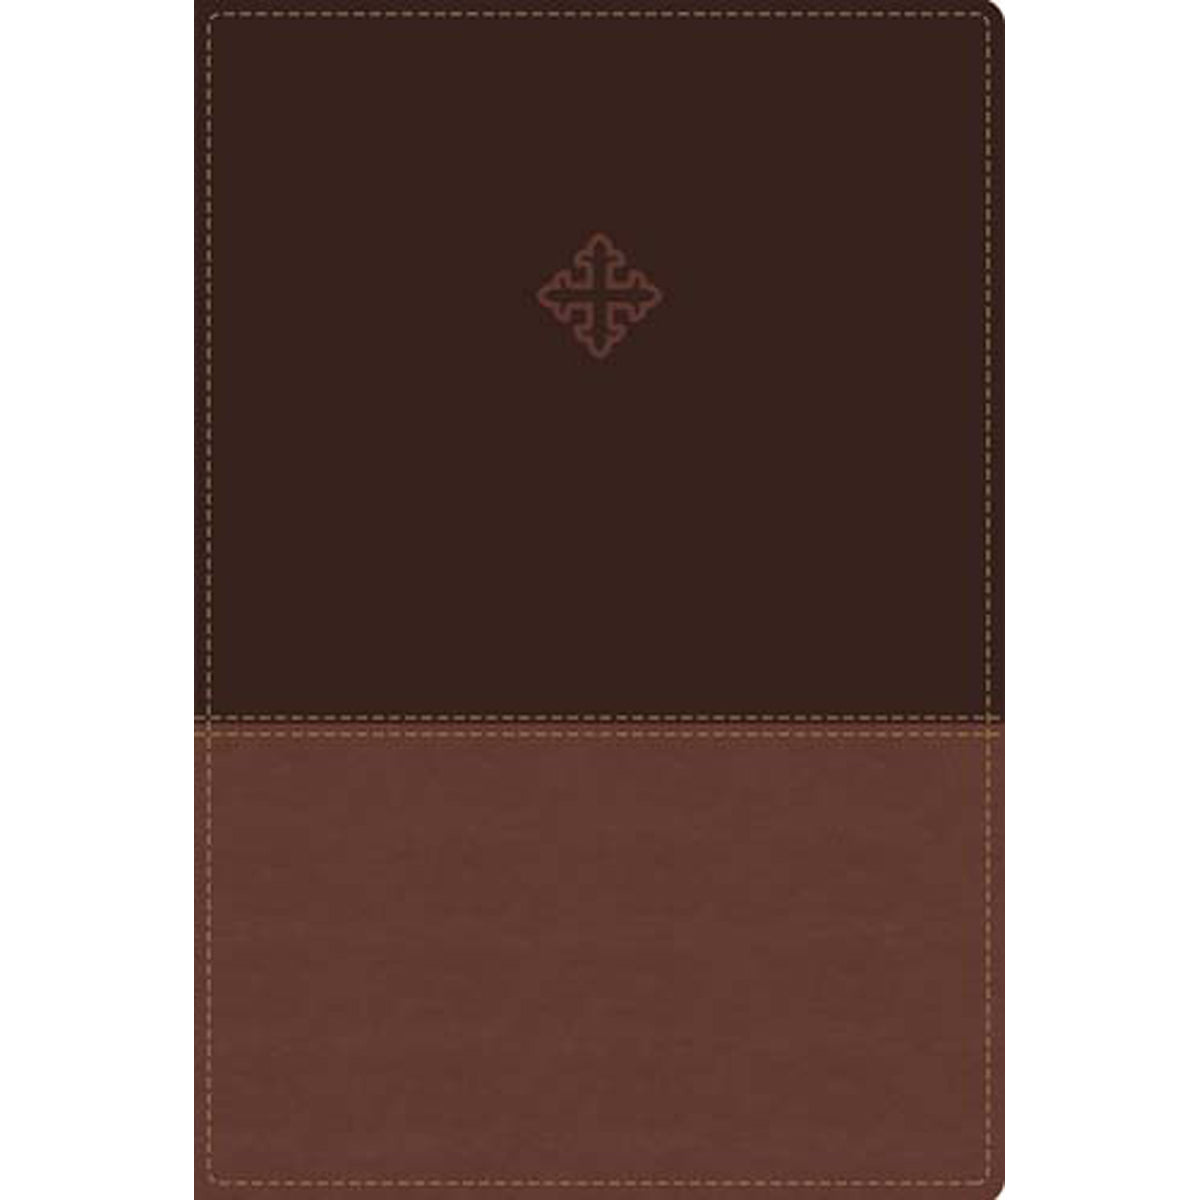 Amplified Study Bible Indexed Brown (Imitation Leather)